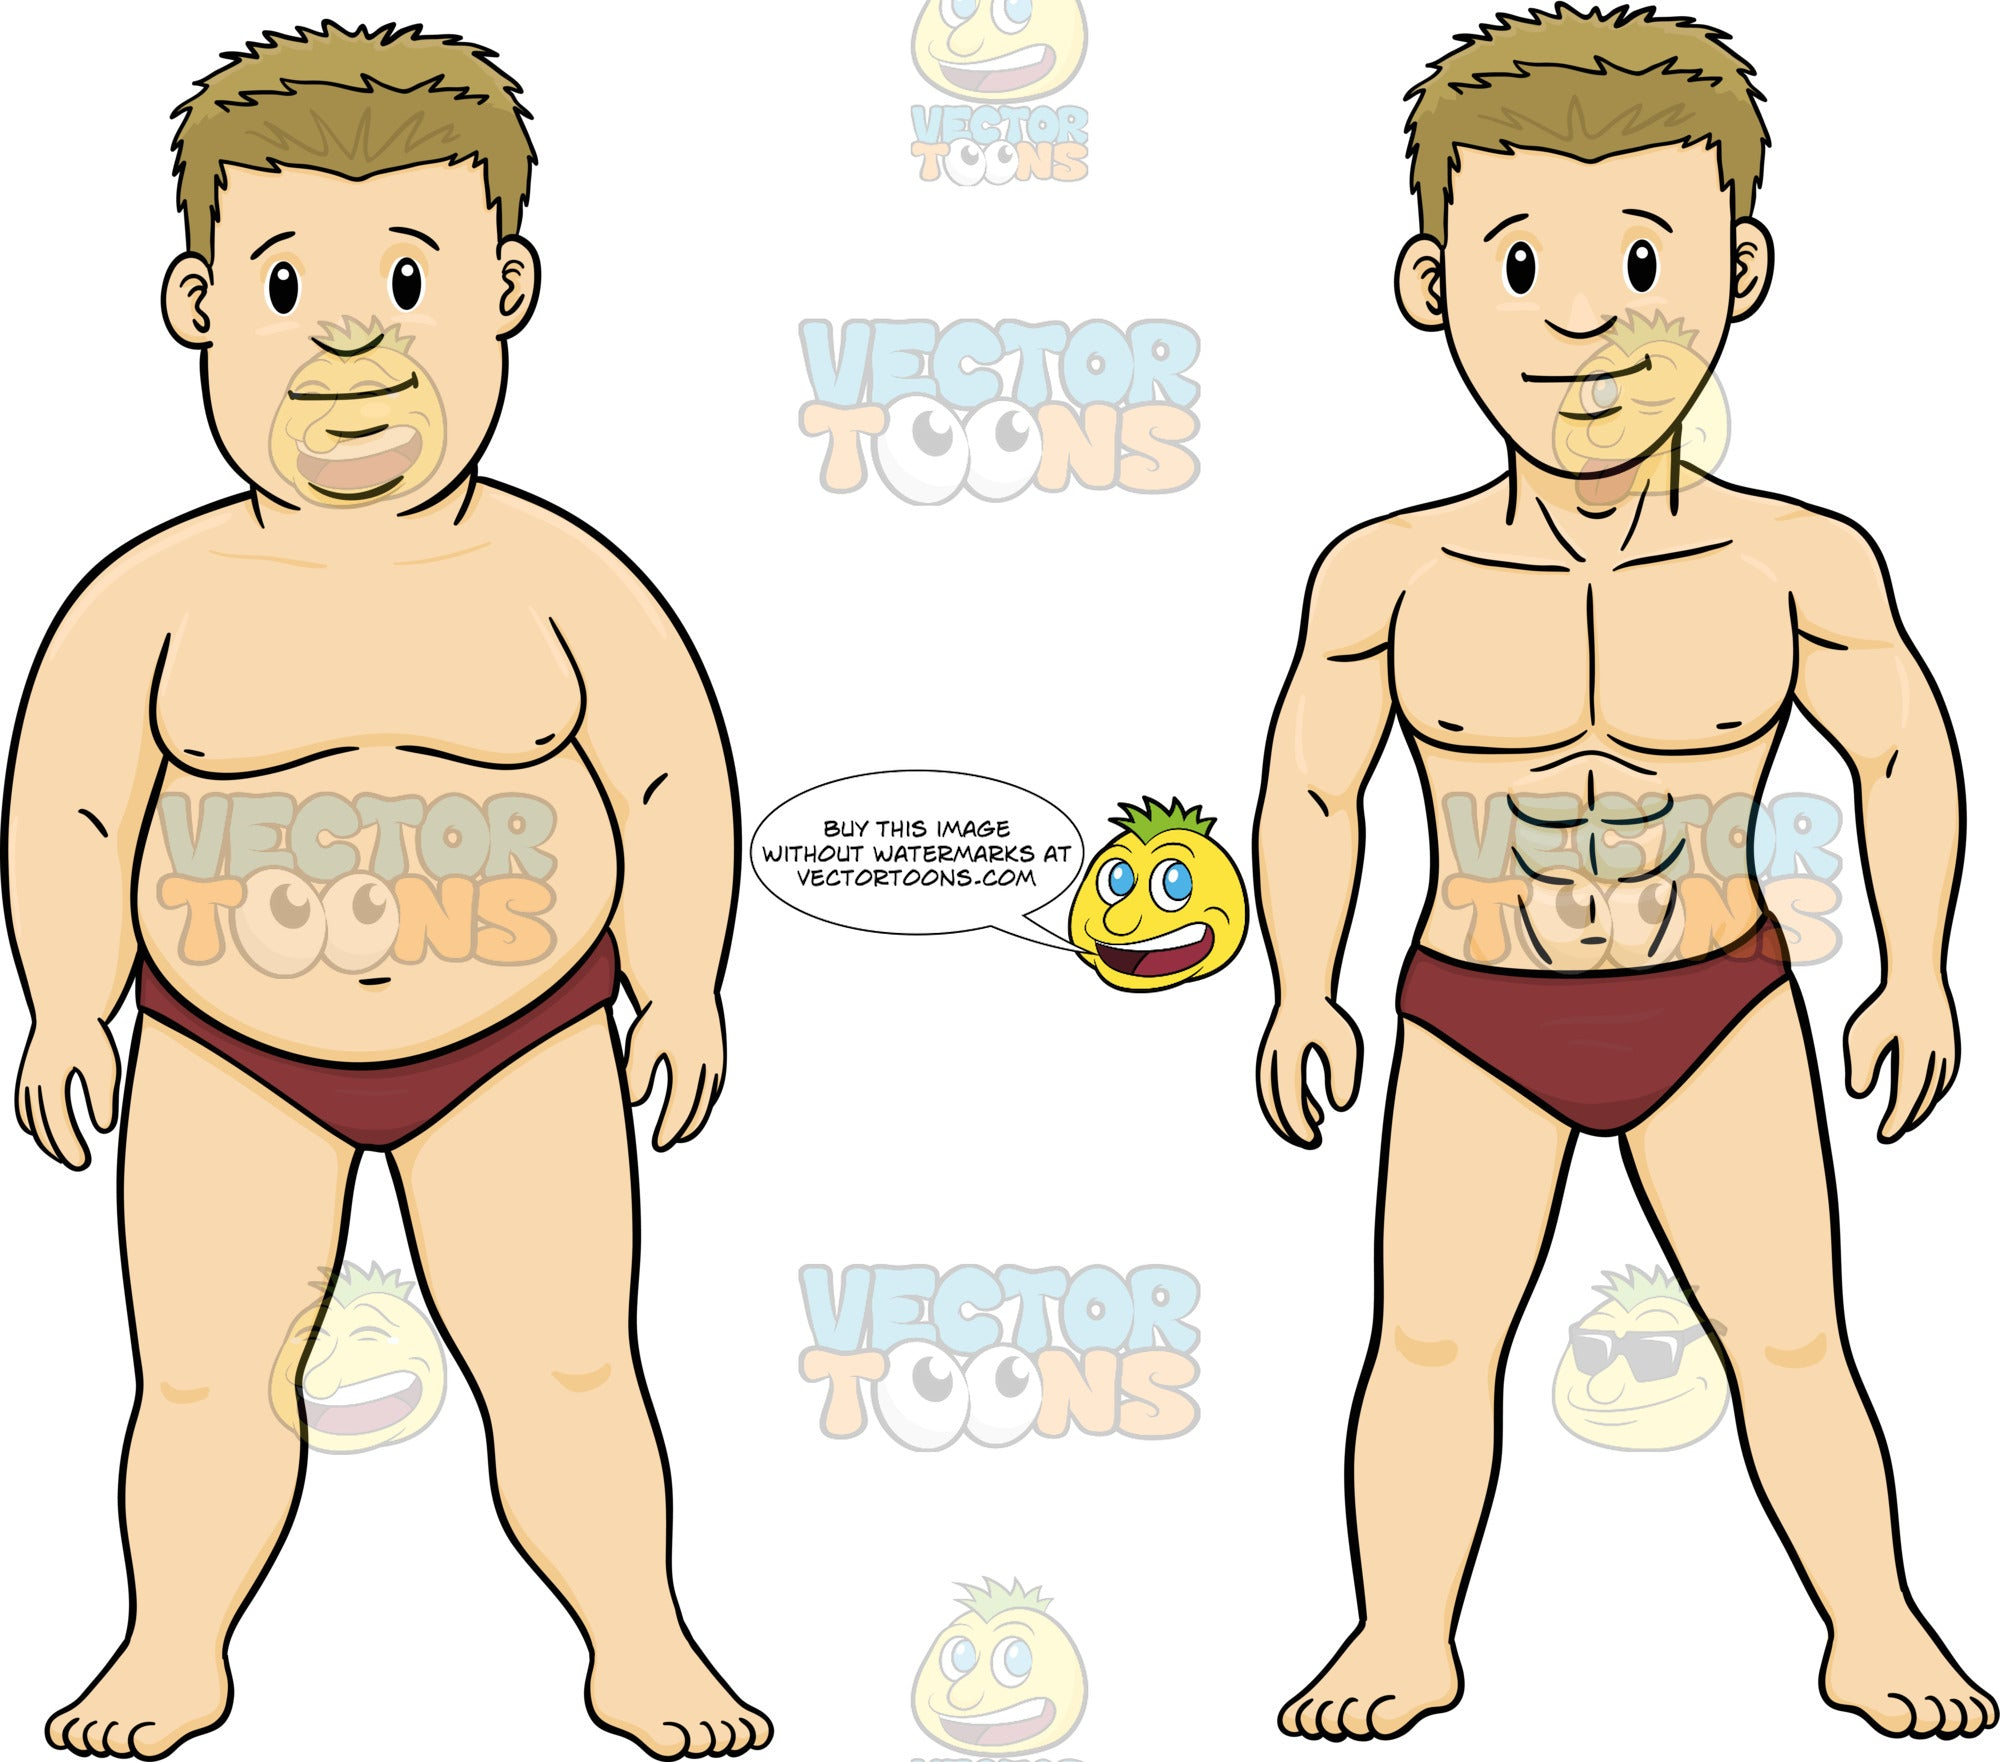 d2a53e6f07 Overweight And Muscular Versions Of A Man In A Speedo Bathing Suit –  Clipart Cartoons By VectorToons